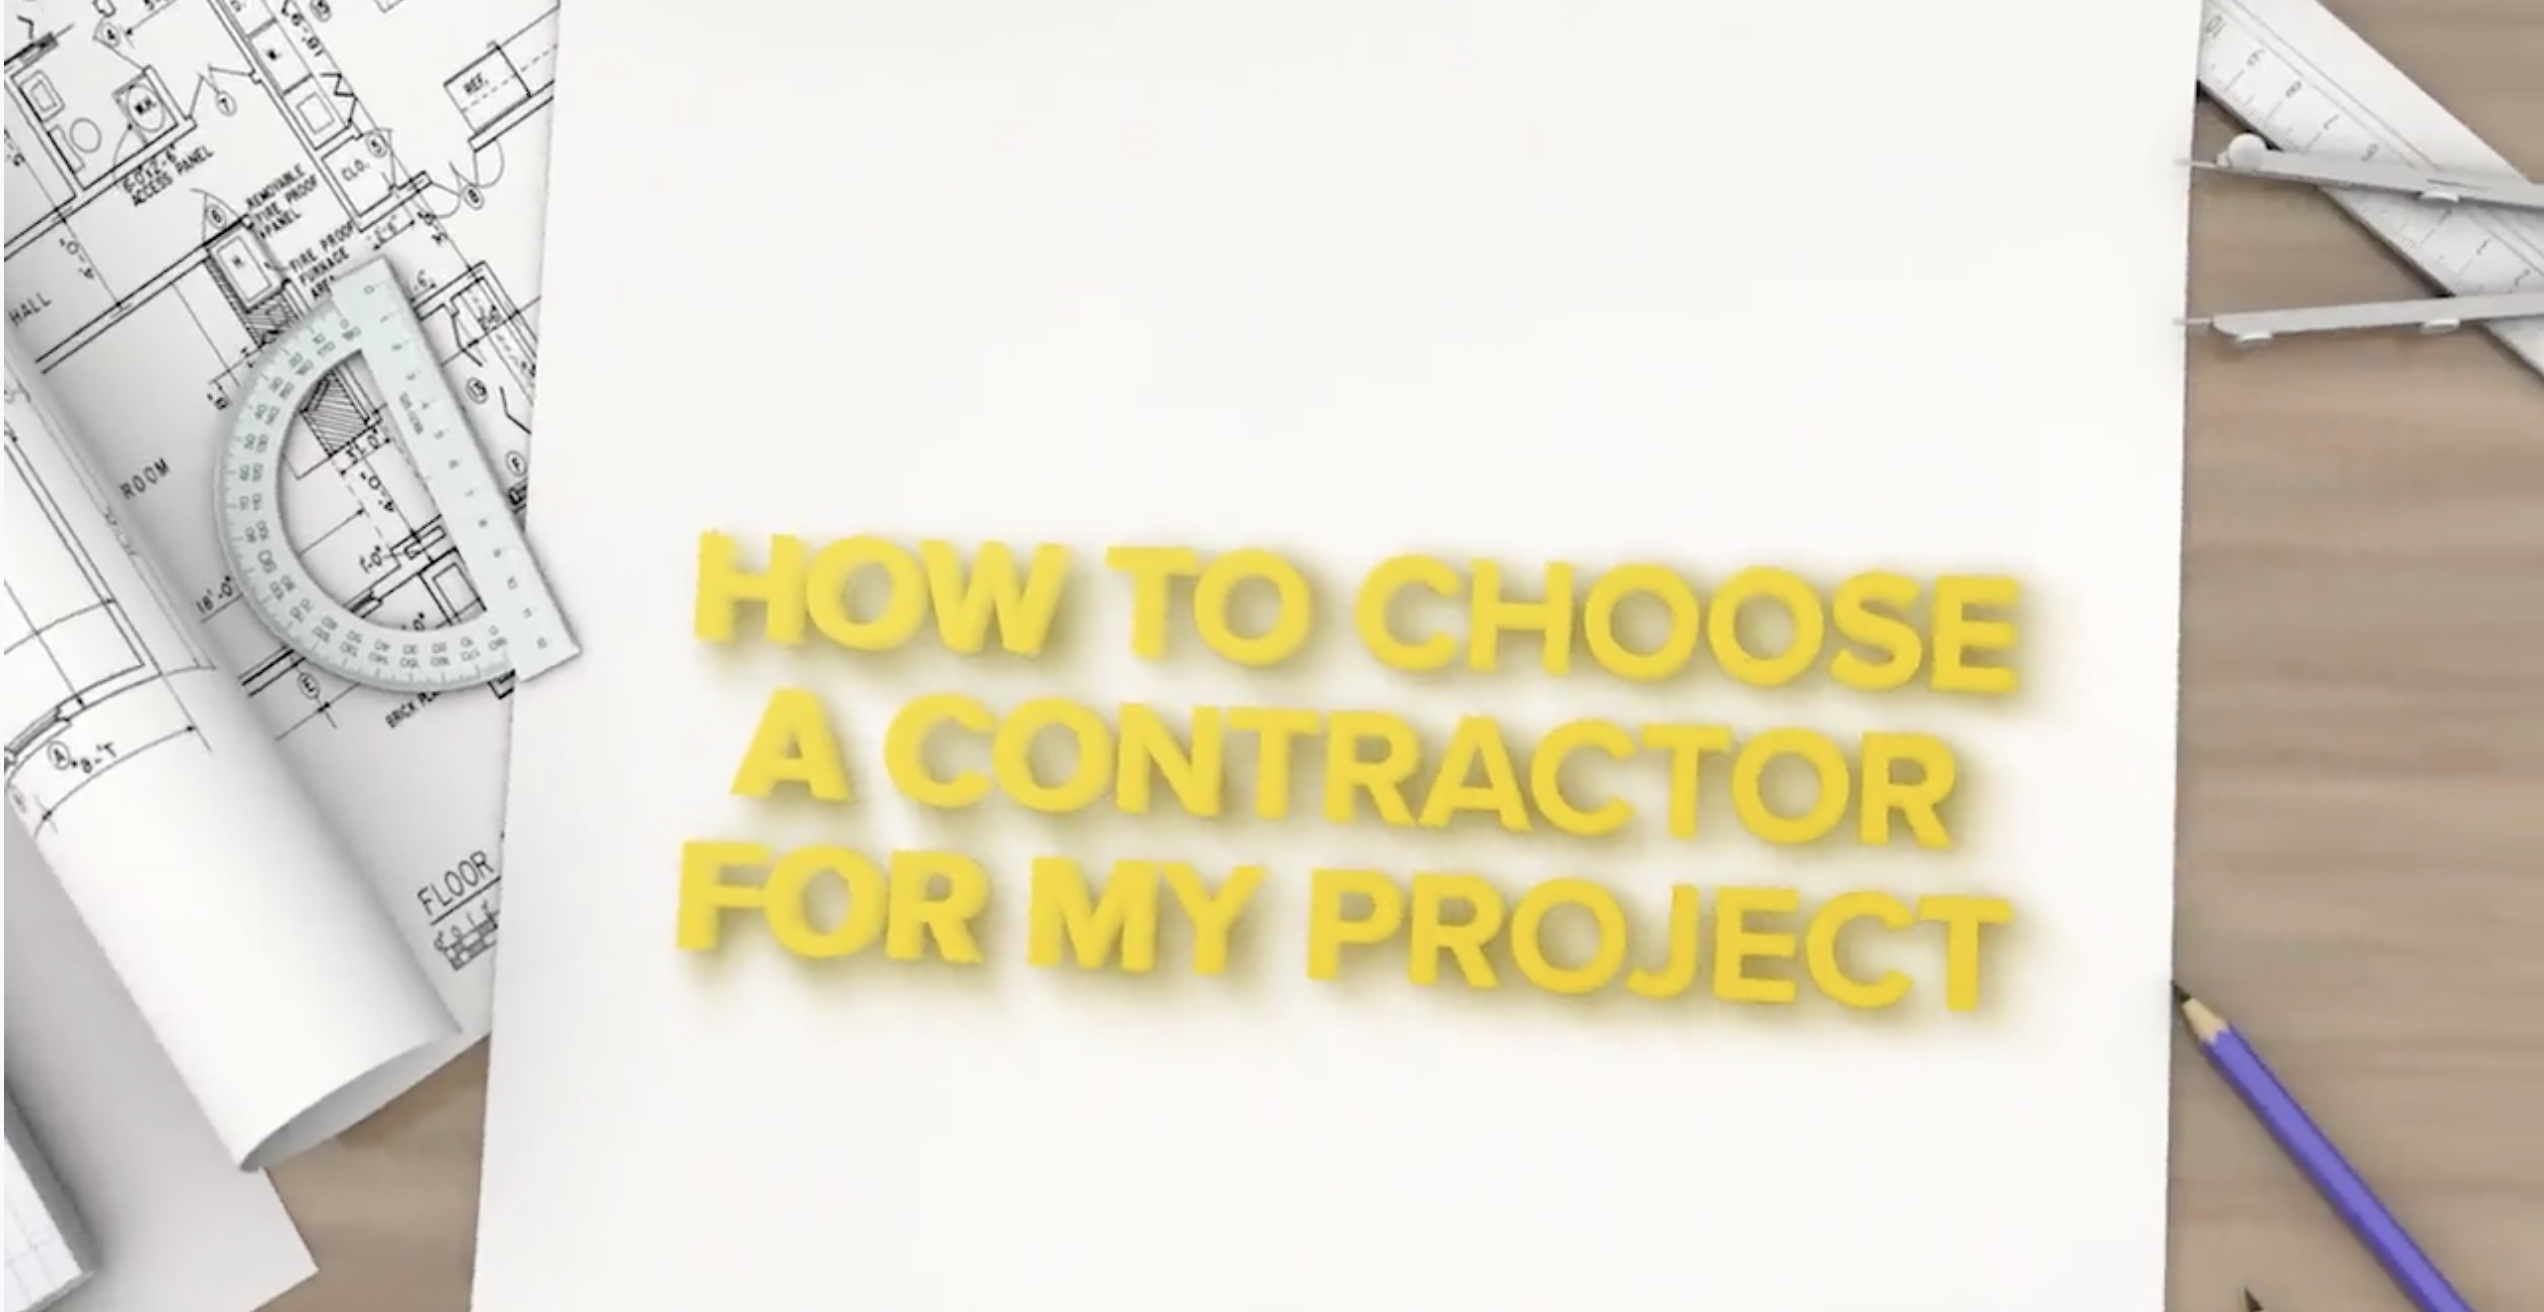 How to choose a Contractor for my project